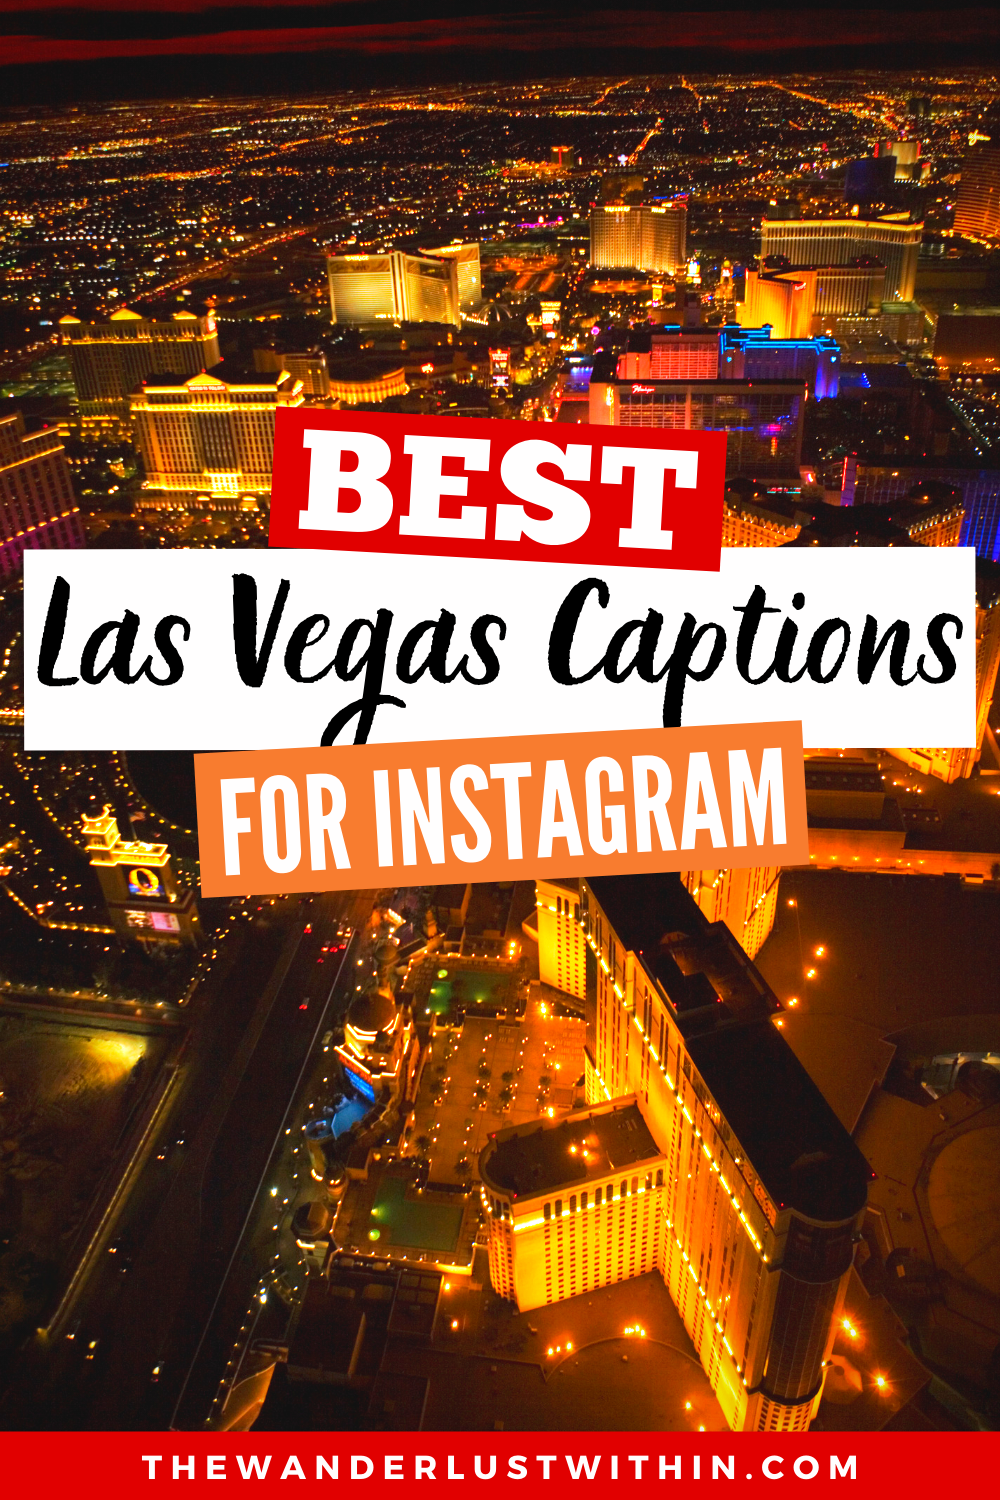 75 Best Las Vegas Quotes And Captions For Instagram 2021 The Wanderlust Within In 2021 Las Vegas Quotes Vegas Quotes Instagram Captions